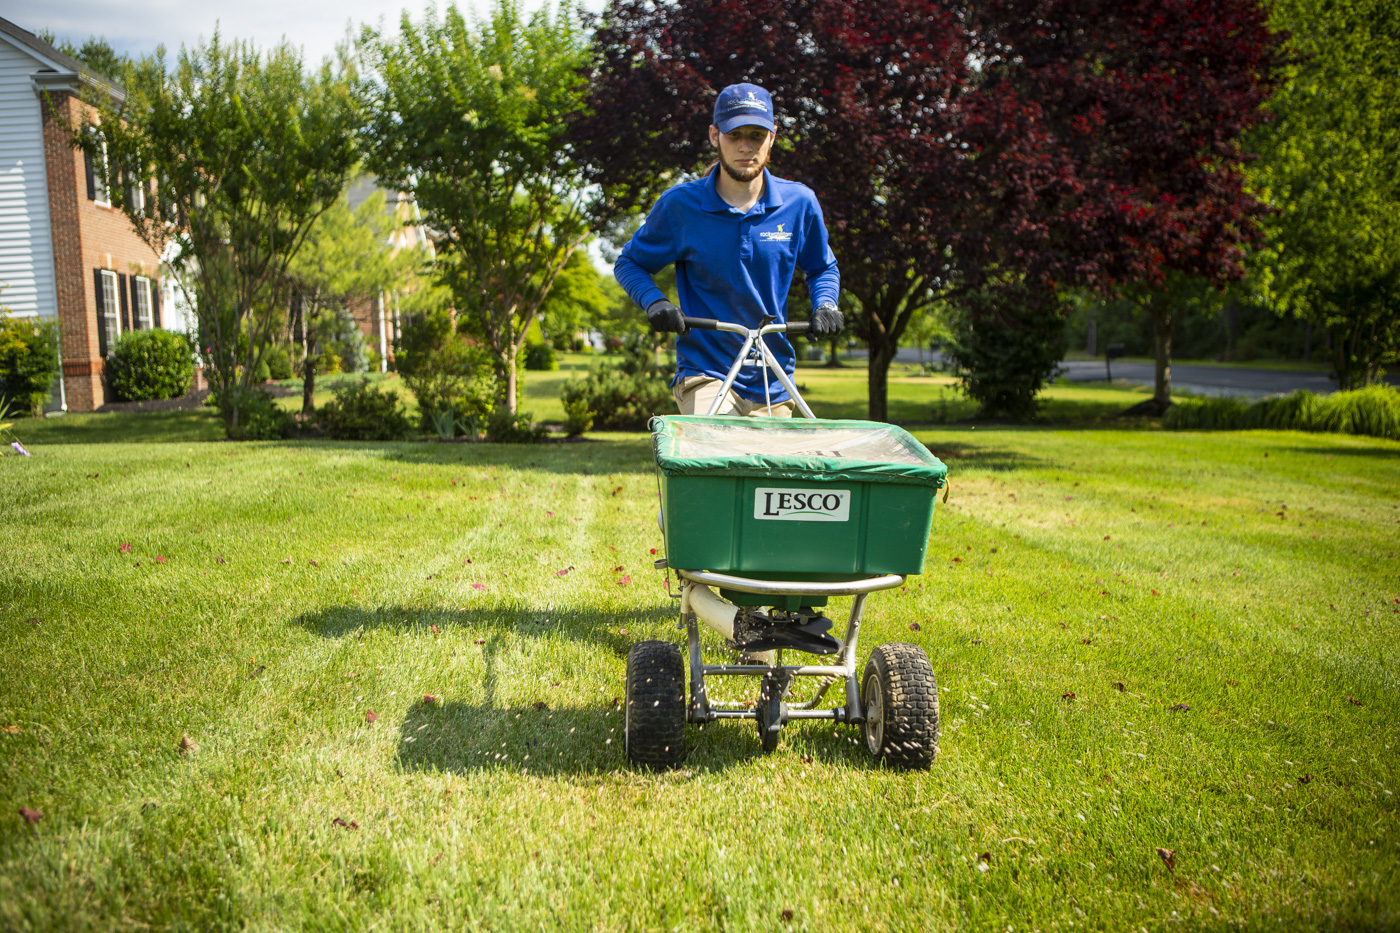 lawn care technician fertilizing lawn